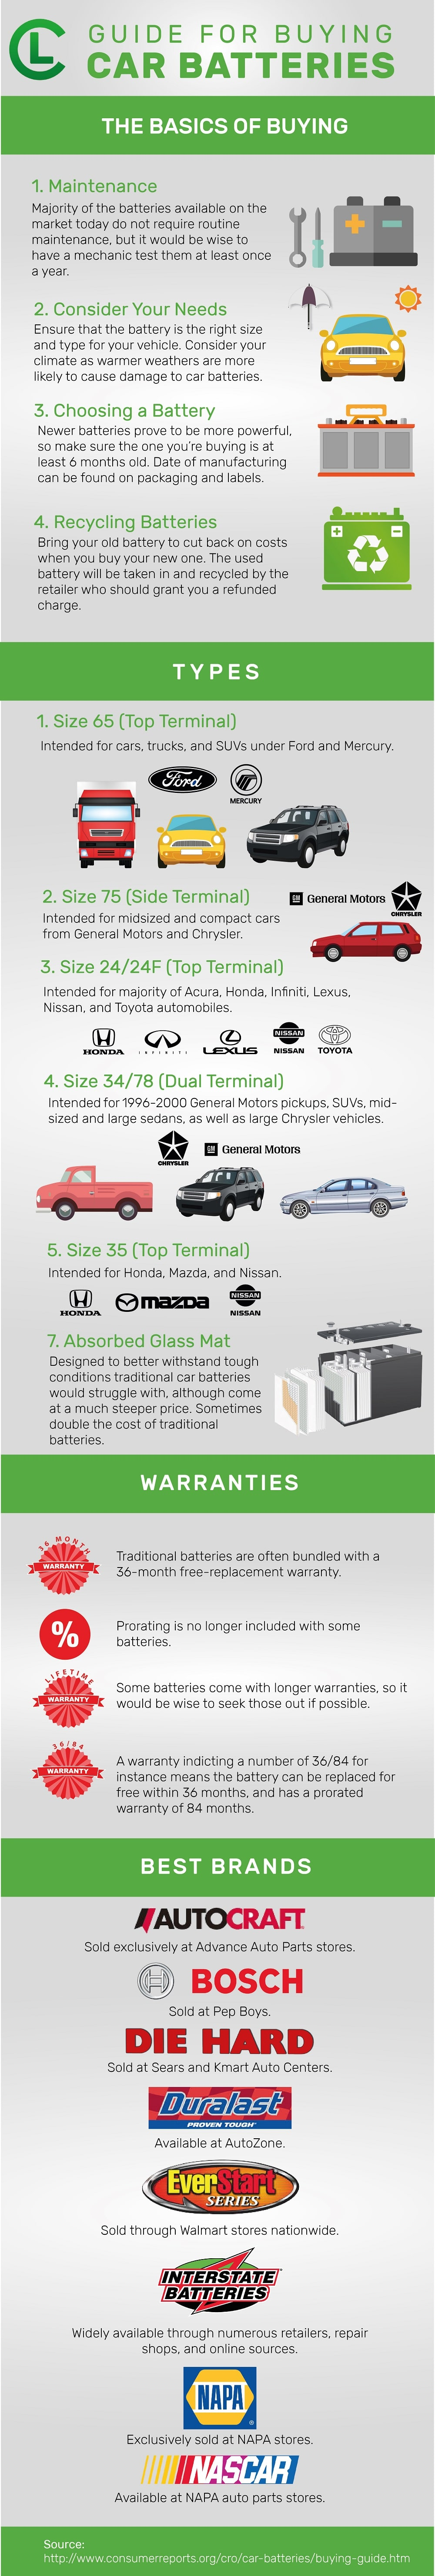 Guide For Buying Car Batteries Infographic